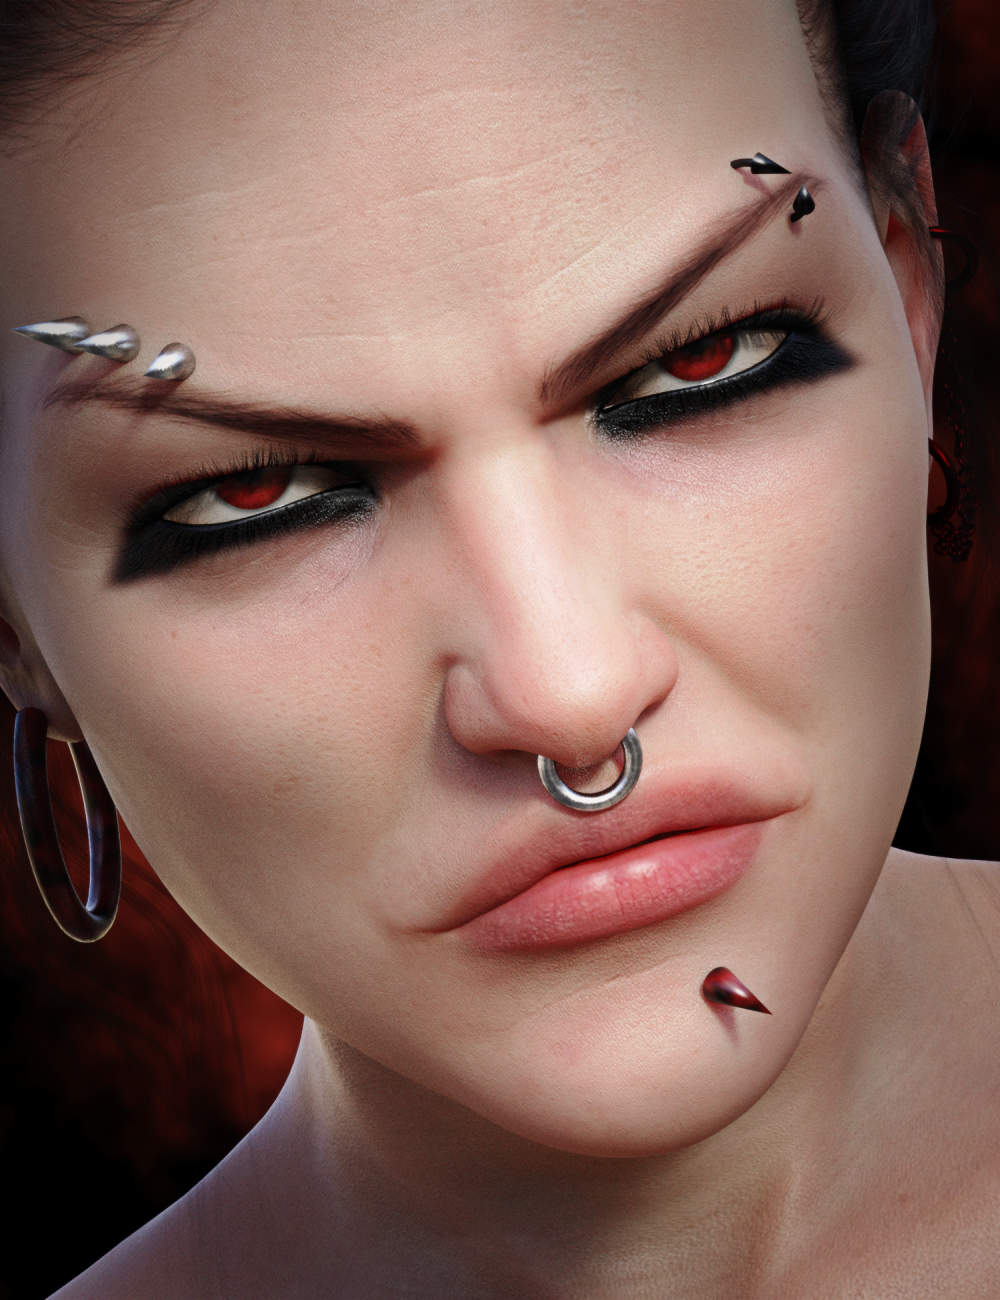 Devilish Piercing for Genesis 8 and 8.1 Females by: Neikdian, 3D Models by Daz 3D